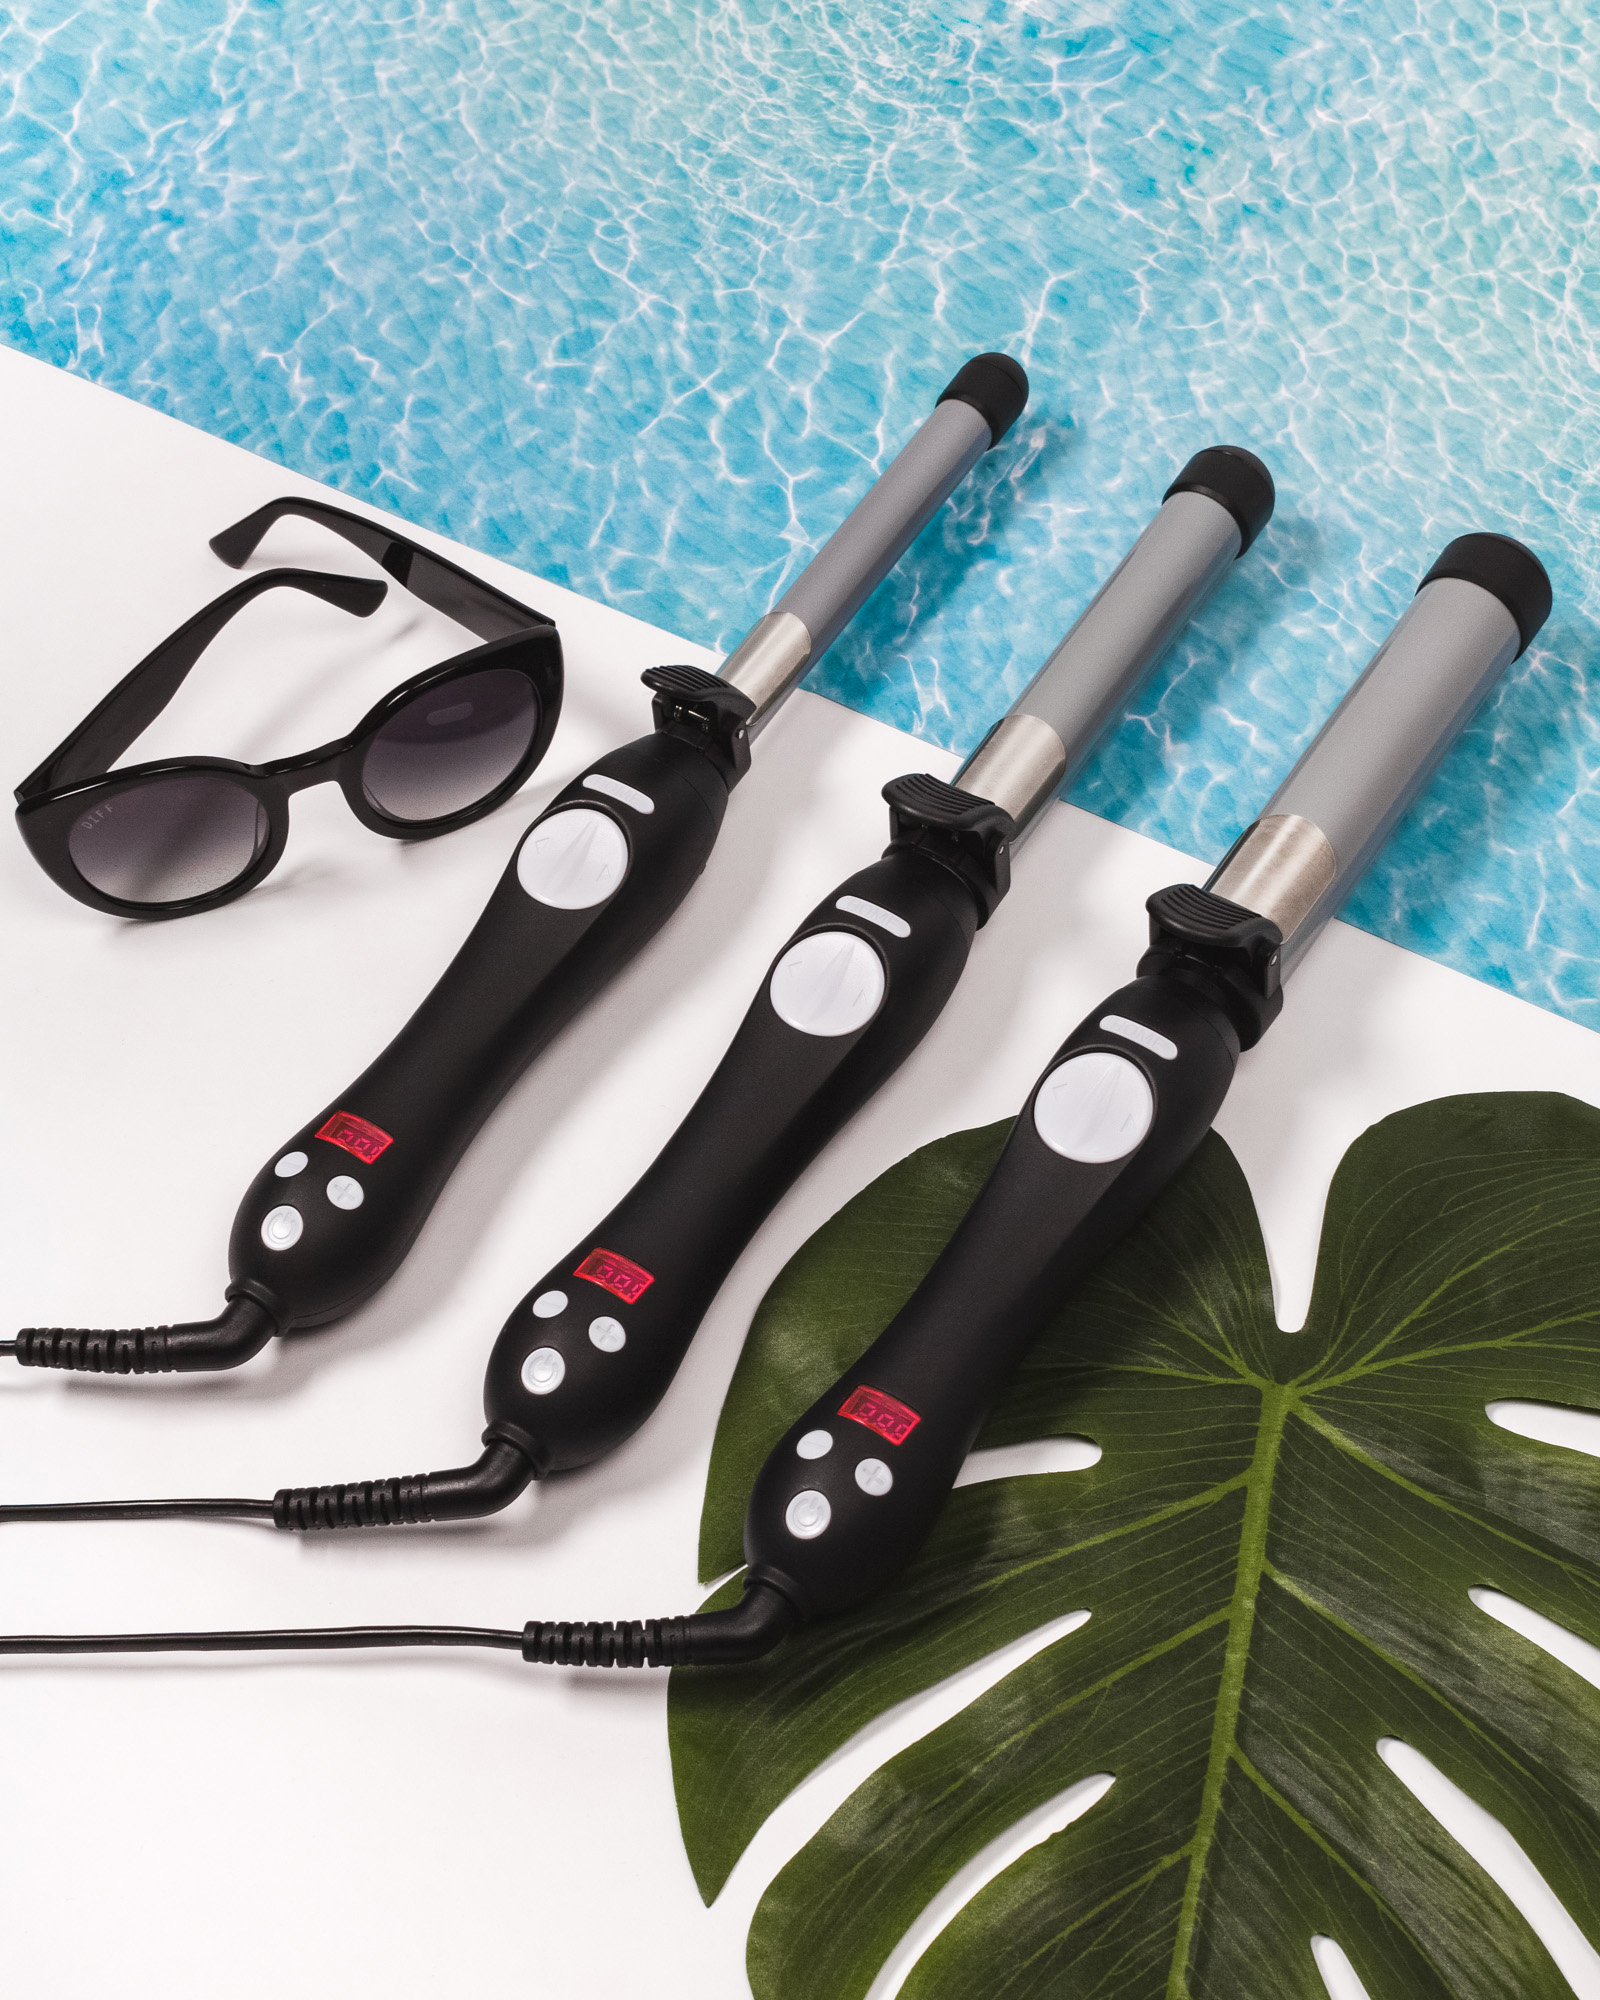 Buy 1 Beachwaver, Get 1 Beachwaver 50% off!